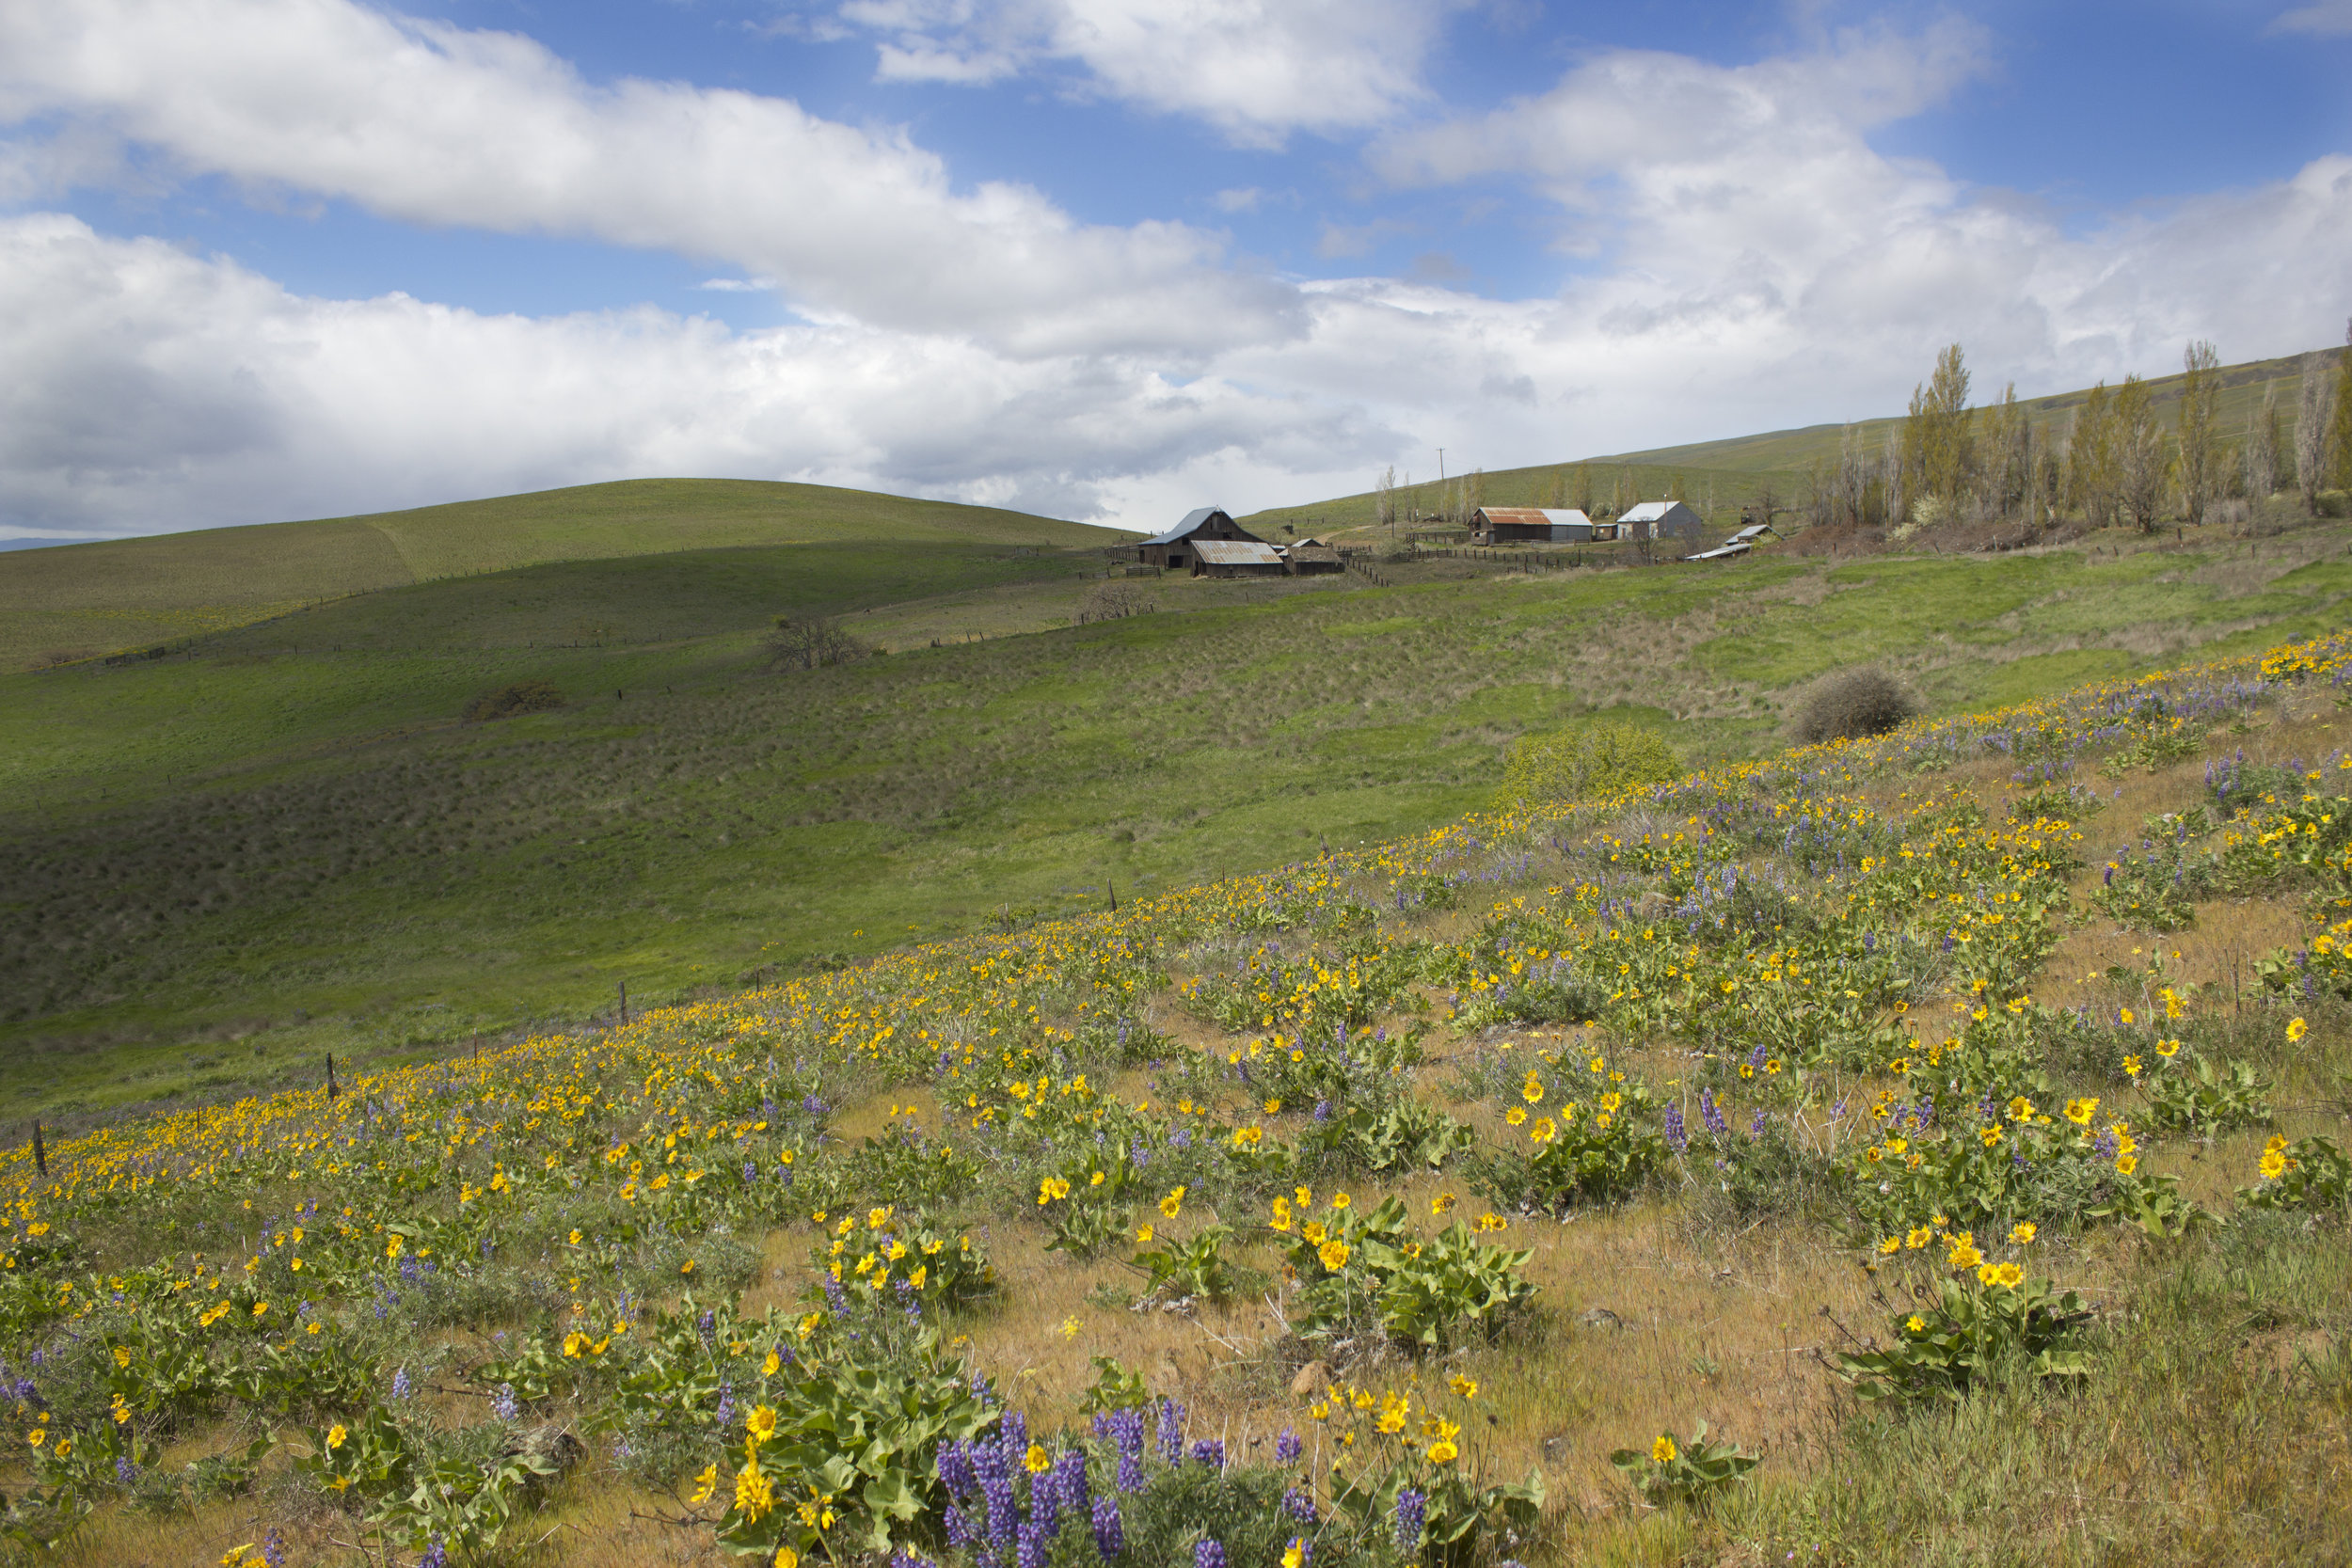 Dalles Mountain Ranch complex